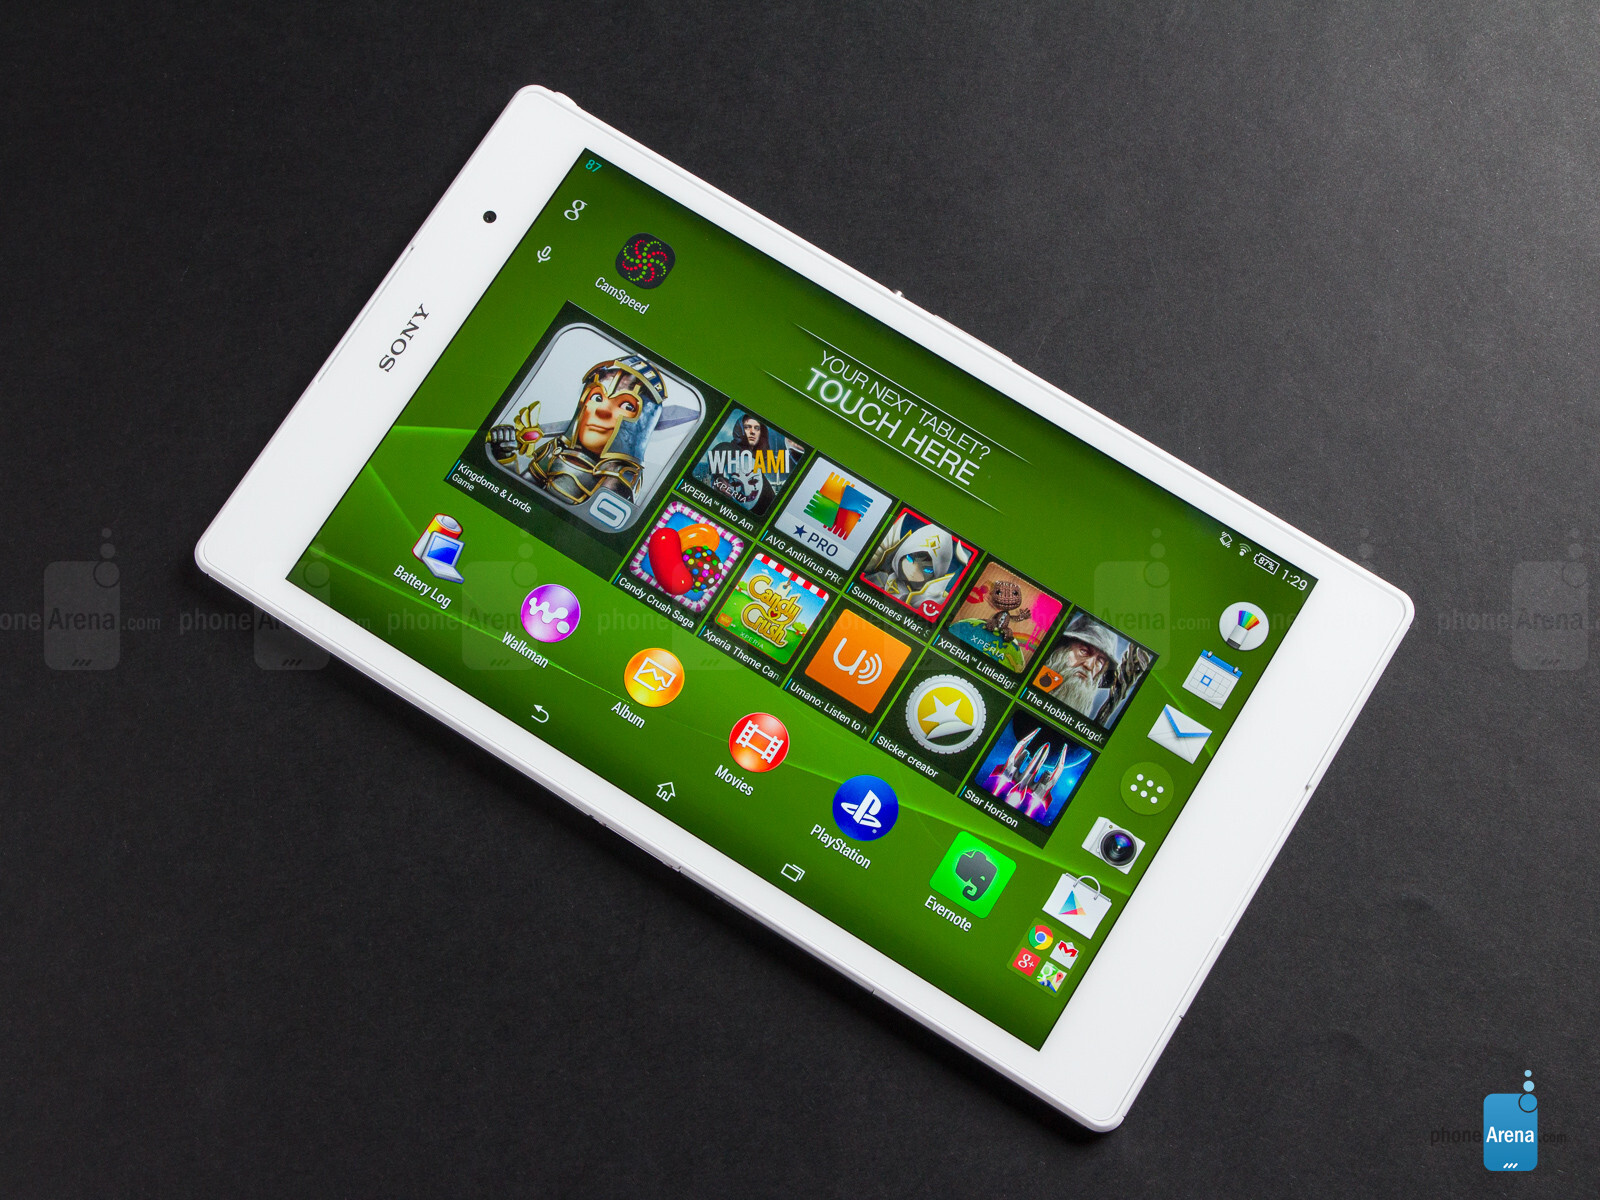 Sony Xperia Z3 Tablet Compact Review - PhoneArena